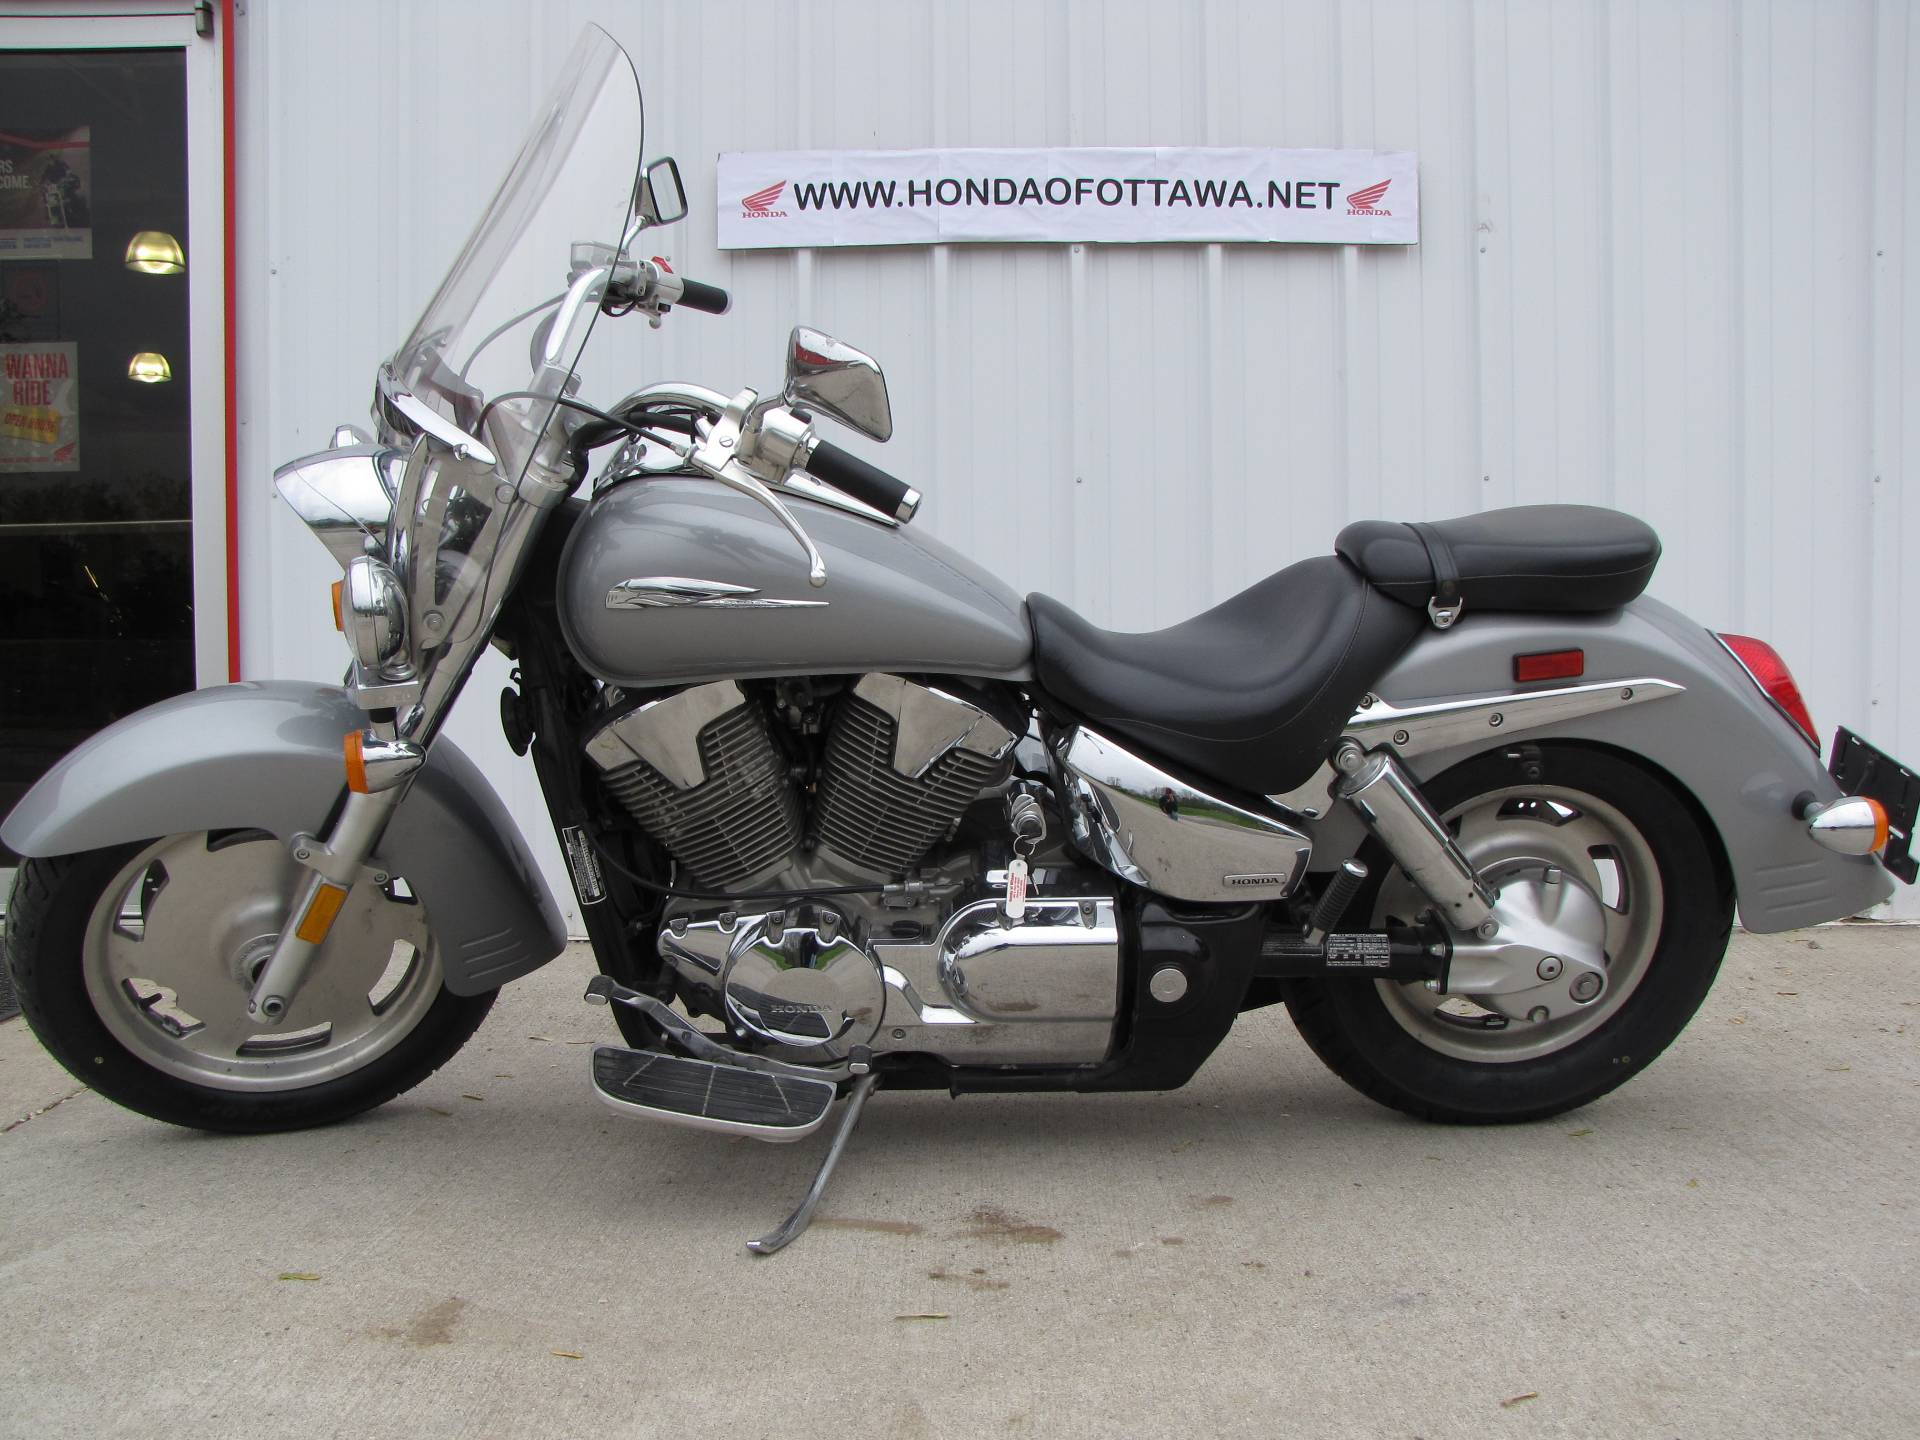 2005 Honda VTX™ 1300R in Ottawa, Ohio - Photo 1